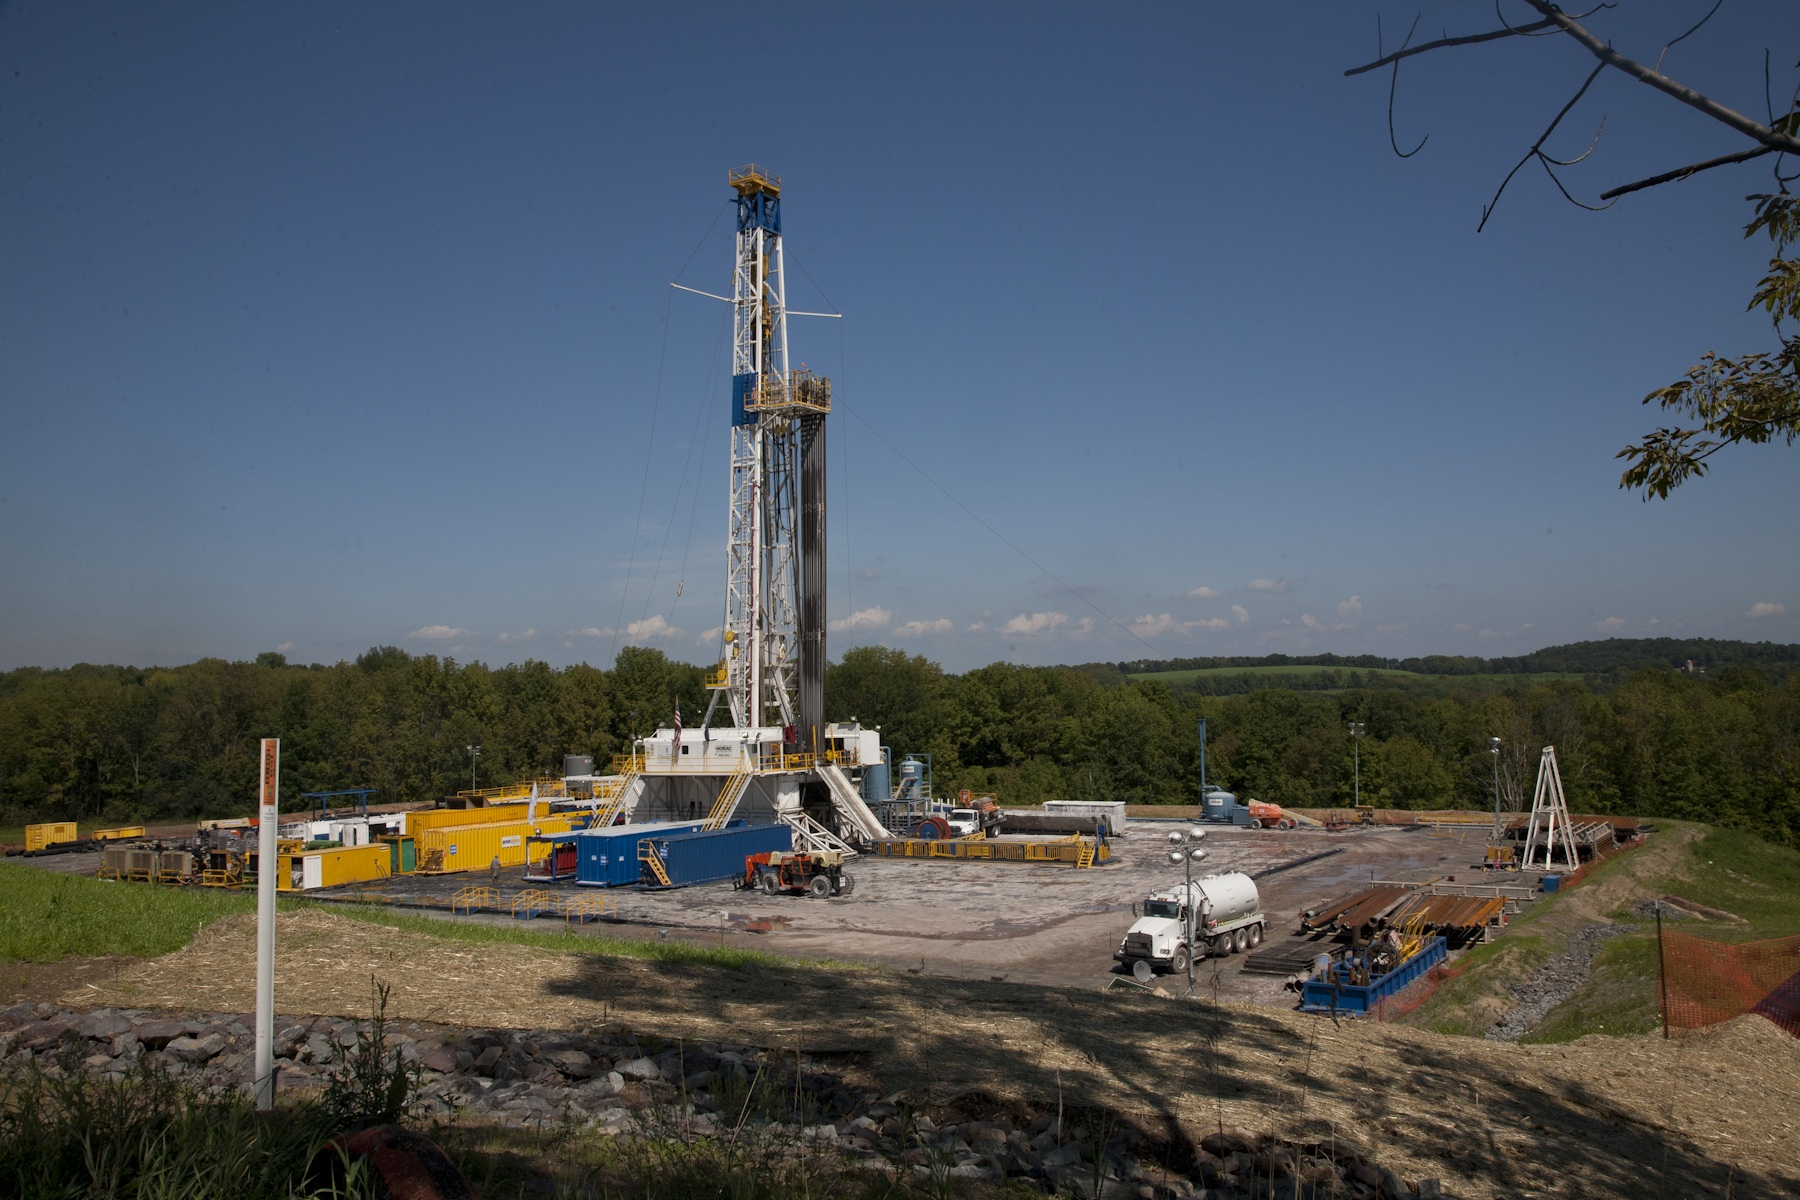 Bills for fracking regulation filed again after years of opposition